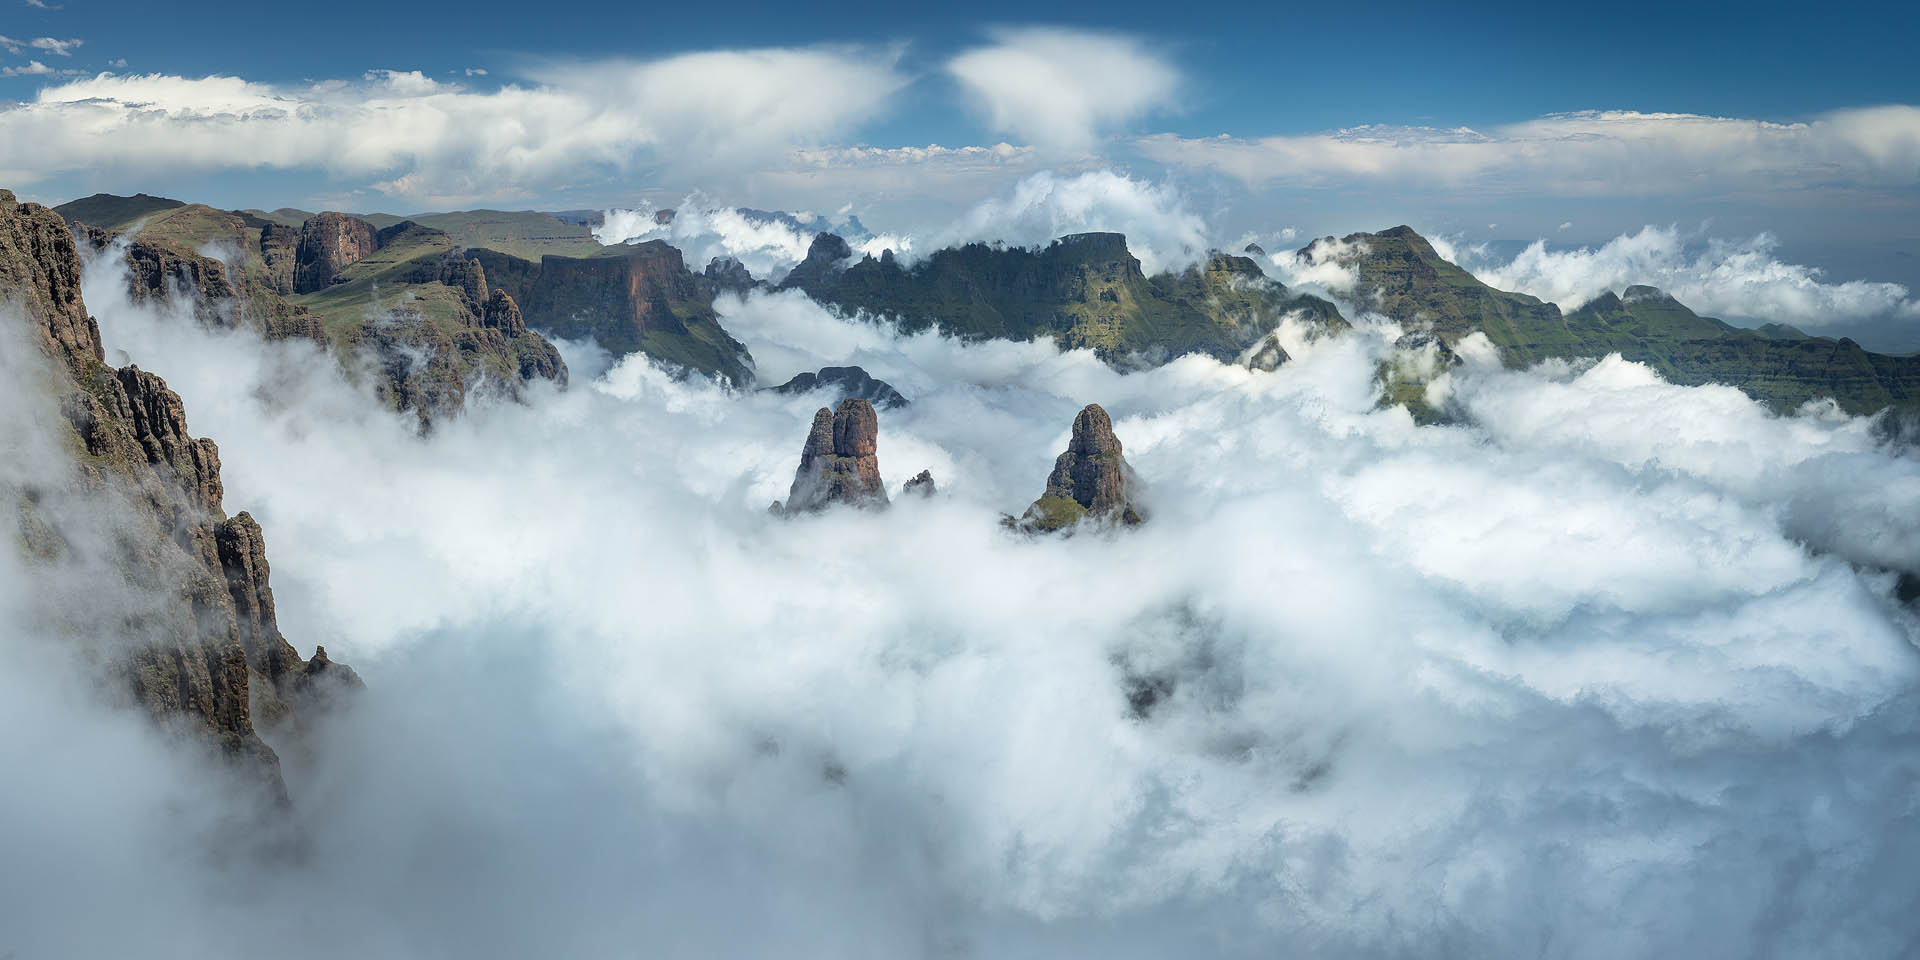 I have seen many spectacular sights in the Drakensberg, so it is hard to pick favourites, but this certainly ranks among them. In the centre is Pyramid and Column and at the back the Cathedral Ridge. This is actually taken from 100m or so below the summit of Cleft Peak but it gives a much better overlook than the summit itself.